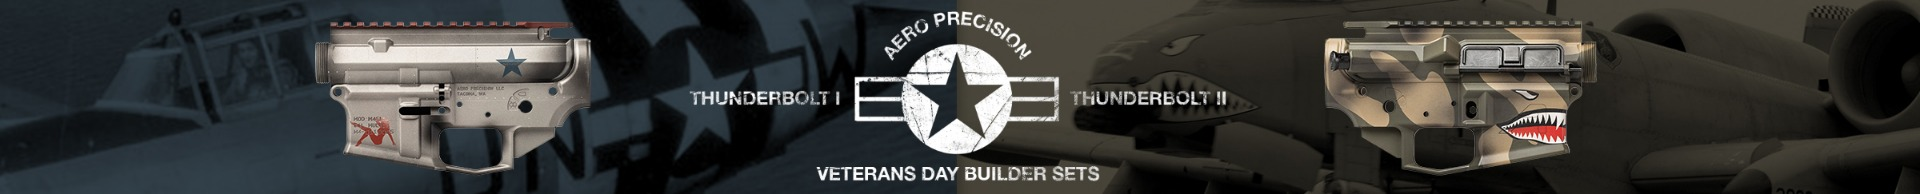 Veterans Day Builder Sets